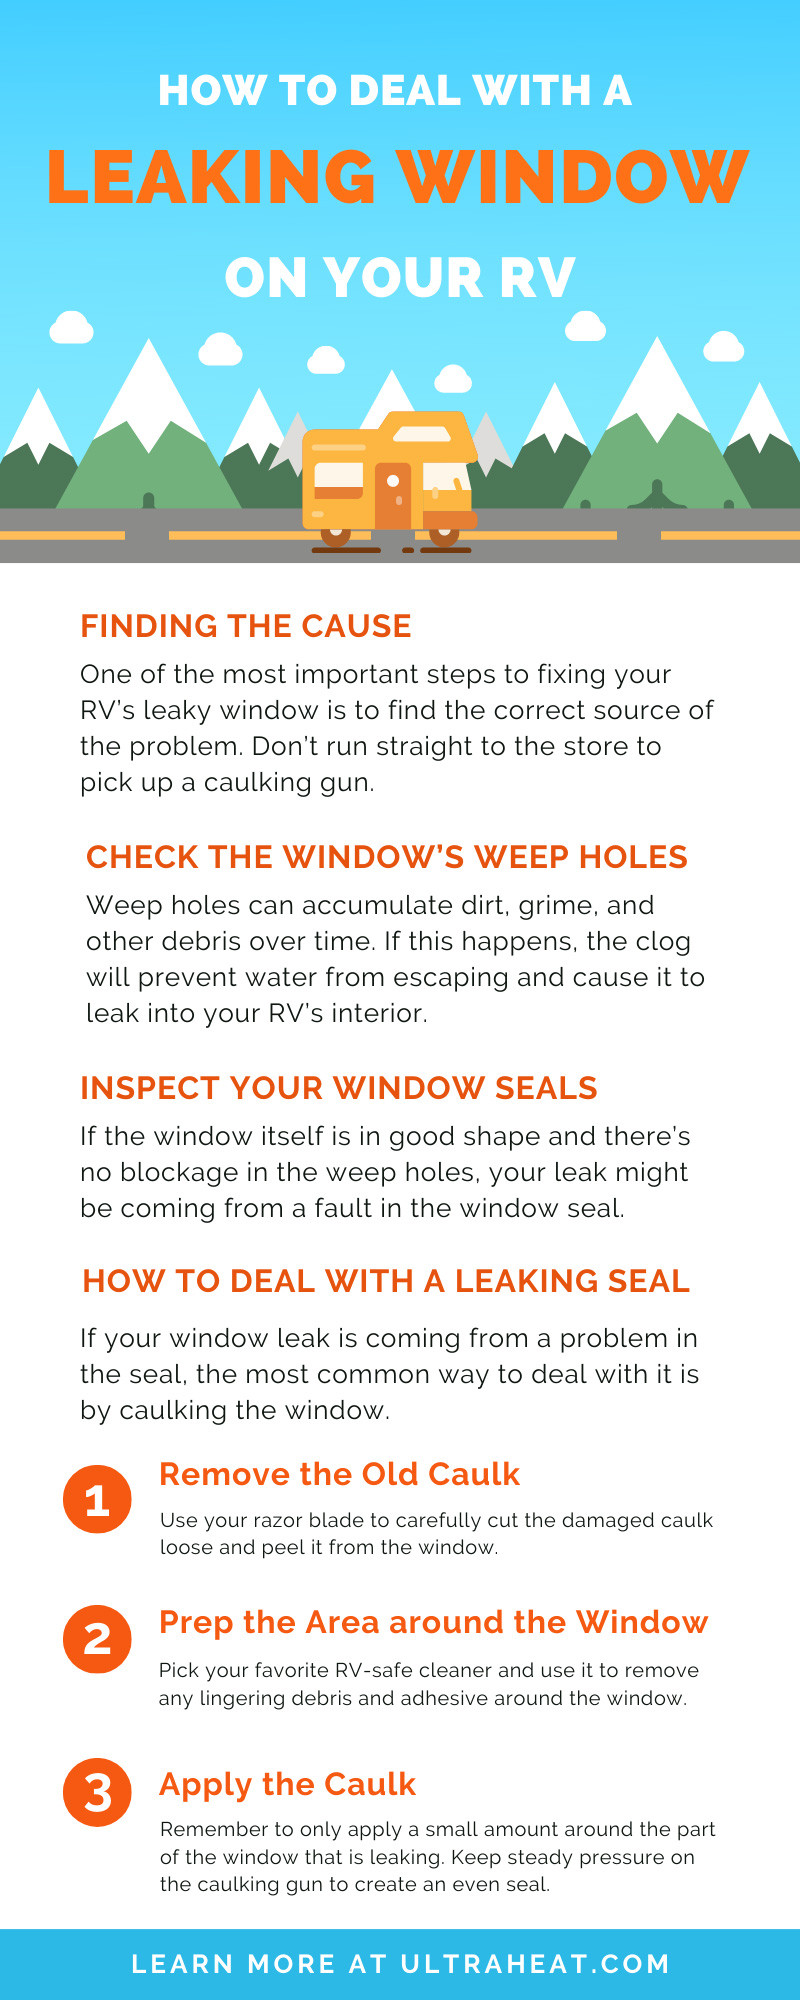 Leaking Window on Your RV